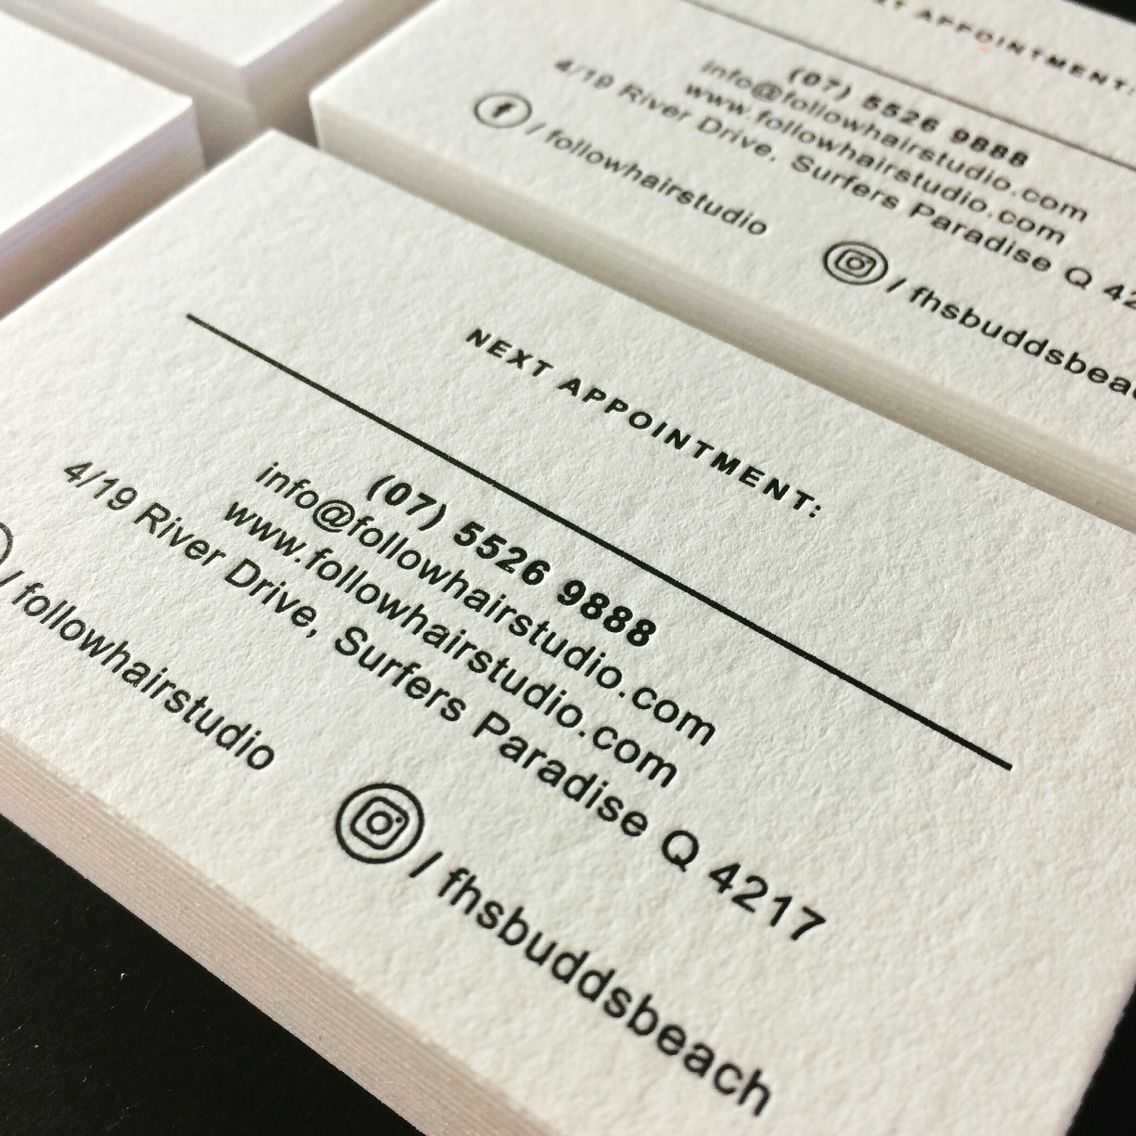 Letterpress printed business cards for follow hair studio printed letterpress printed business cards for follow hair studio printed by the love press brisbane reheart Image collections